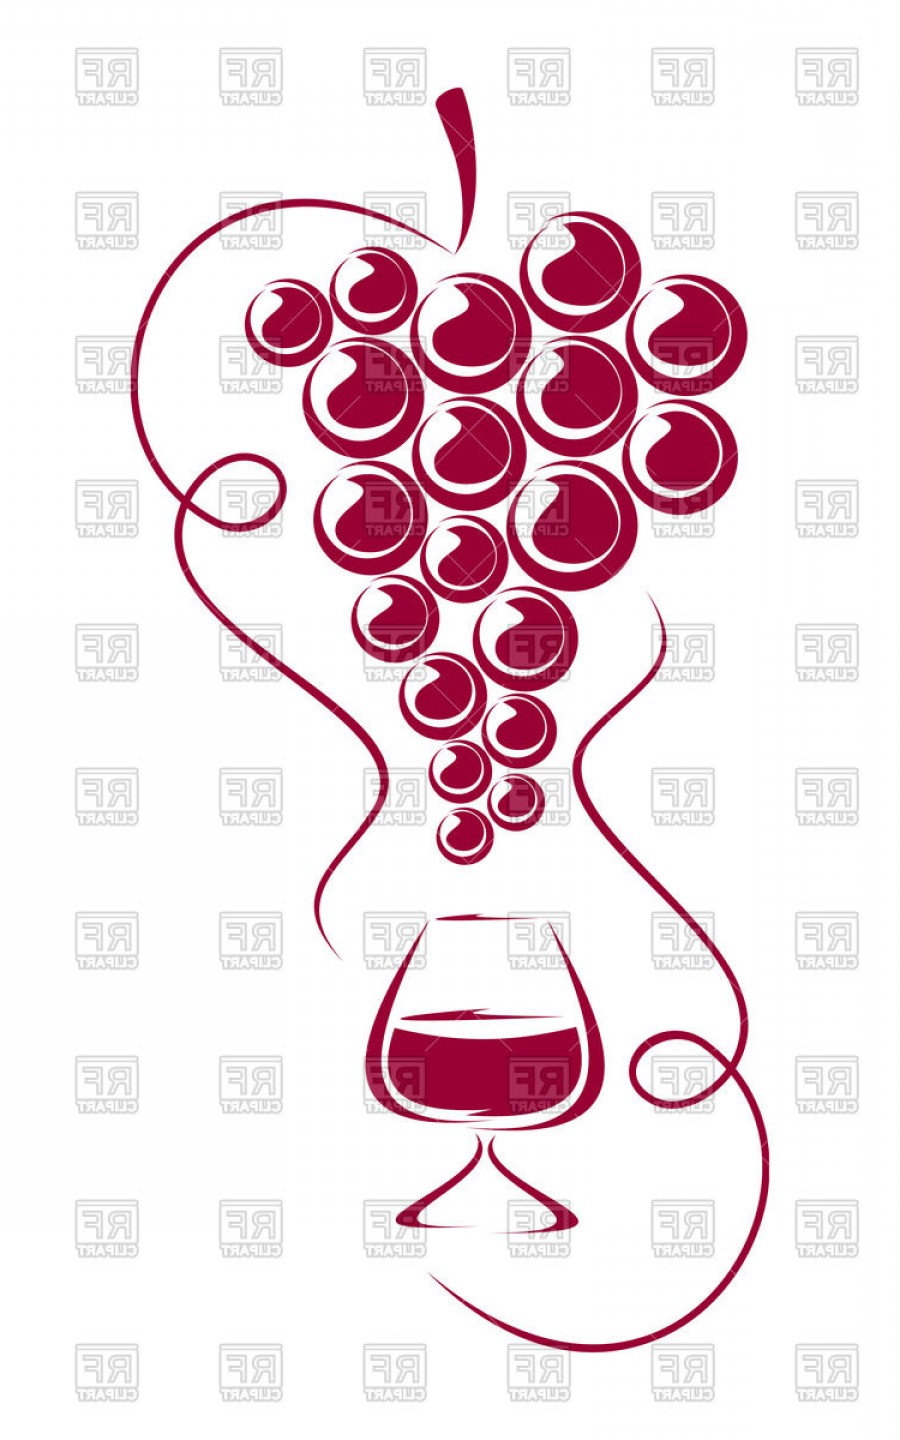 Grapes Clip Art Vector: Grapes And Wine Glass Vinery Winemaking And Wine Sampling Vector Clipart